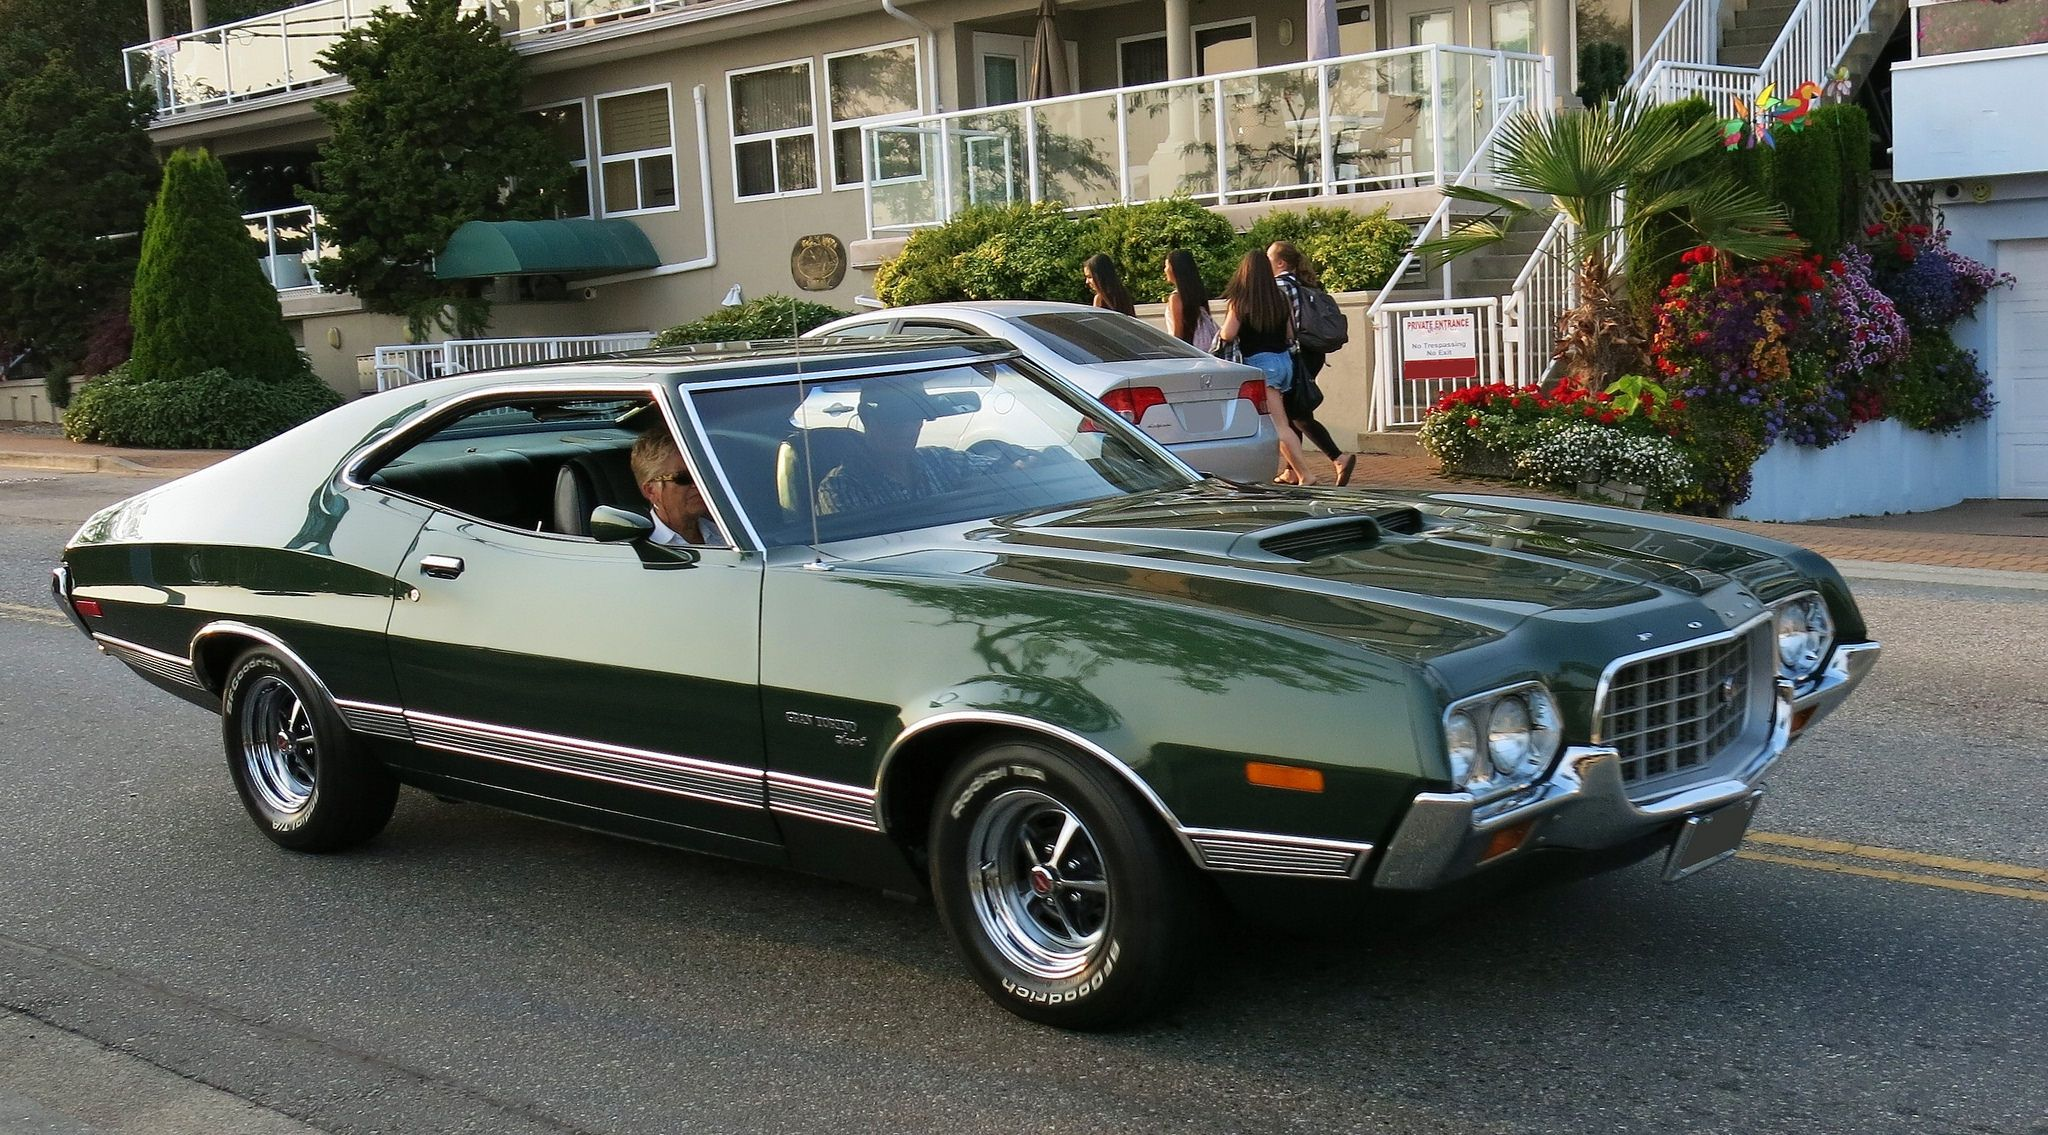 Gran Torino Ford Torino Muscle Cars Ford Fairlane